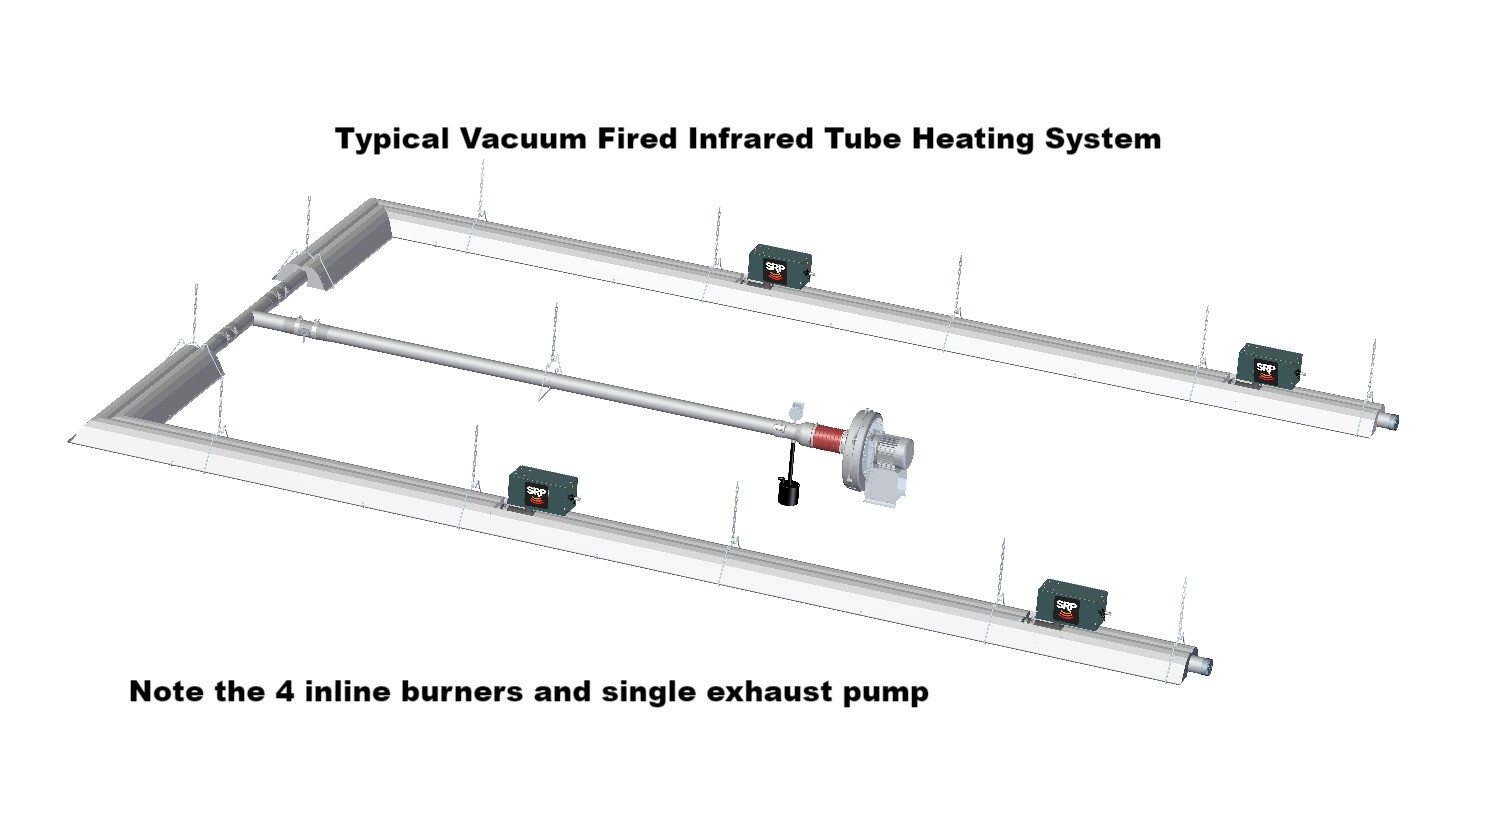 Tube Heaters For Warehouse Sports Arenas Superiortubeheatersco Radiant Heater Wiring Diagram Here Is A Typical Layout Of Vacuum Fired Inline Burner Heating System Up To 6 Burners Can Be Tied Single Pump